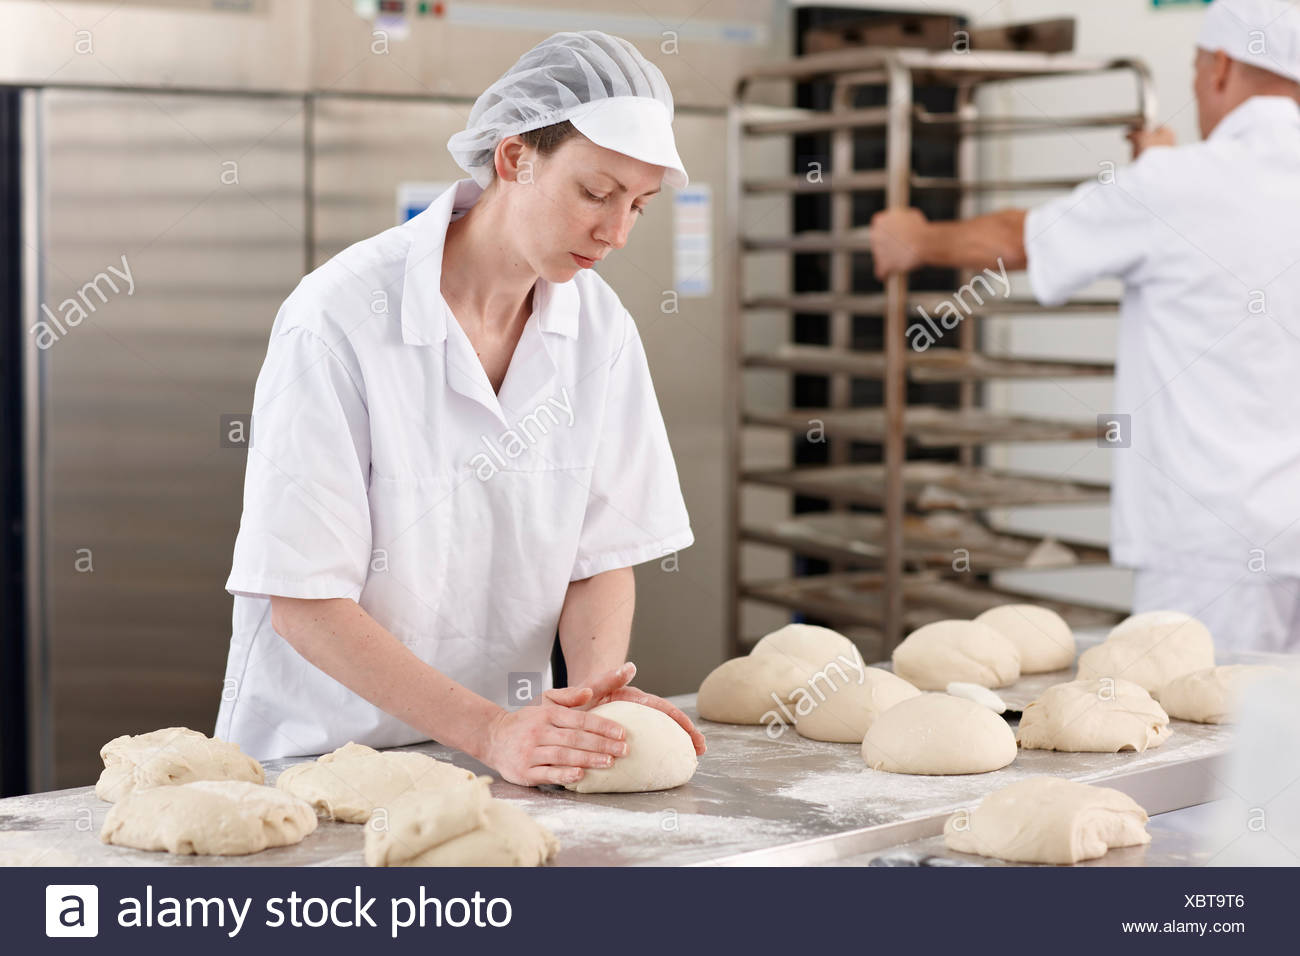 Chef baking in kitchen - Stock Image